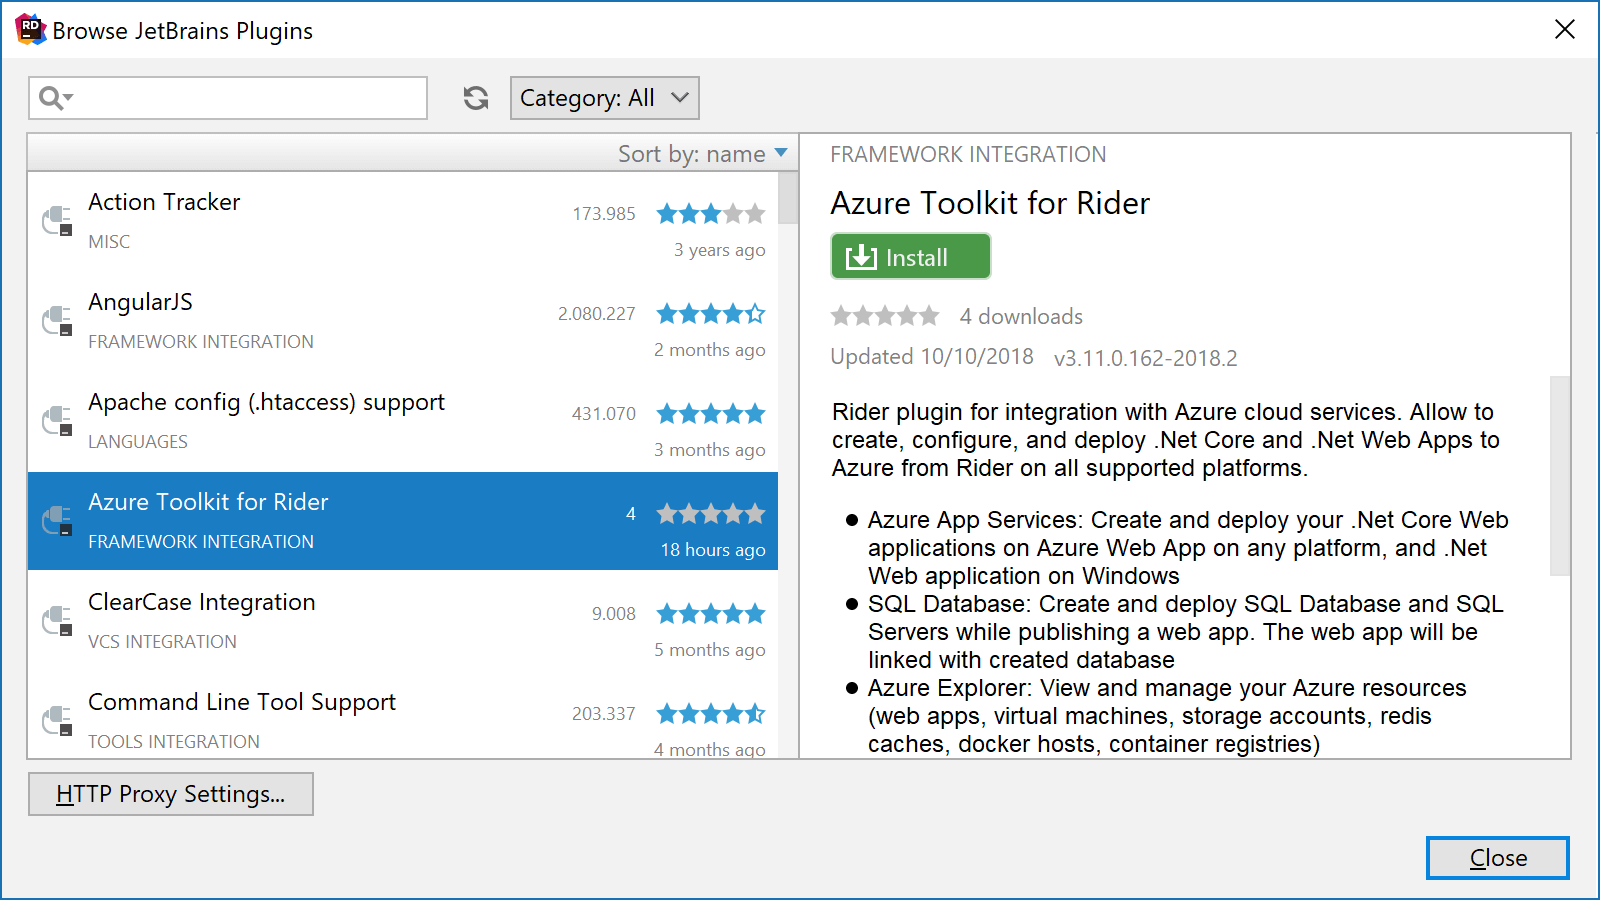 Installing the Azure Toolkit for Rider